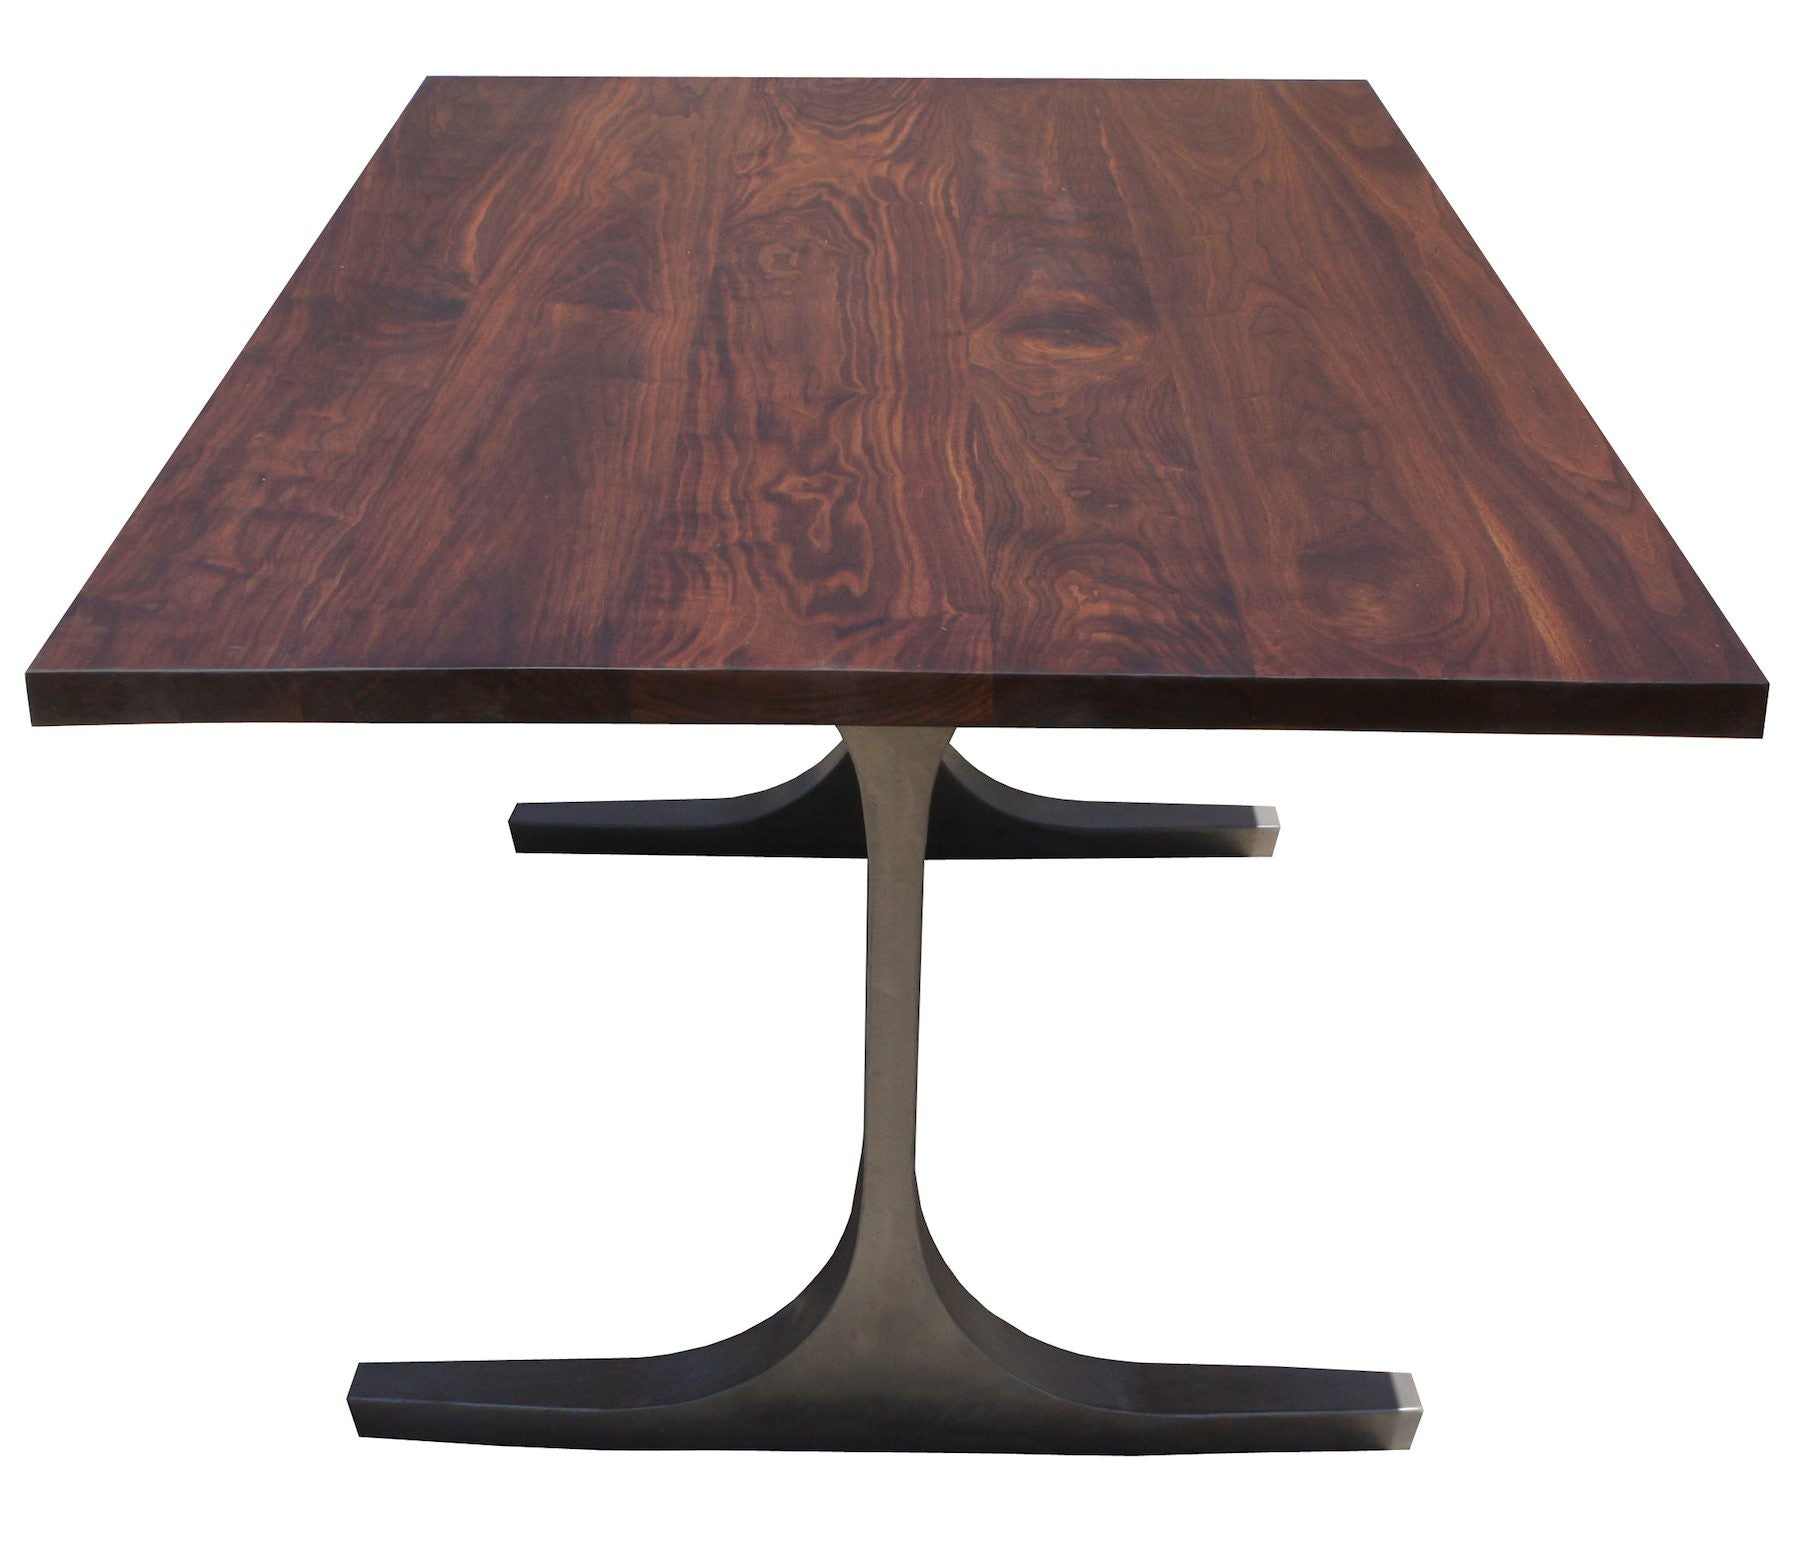 Attirant ... Bergen Dining Table Witha Solid Walnut Top ...